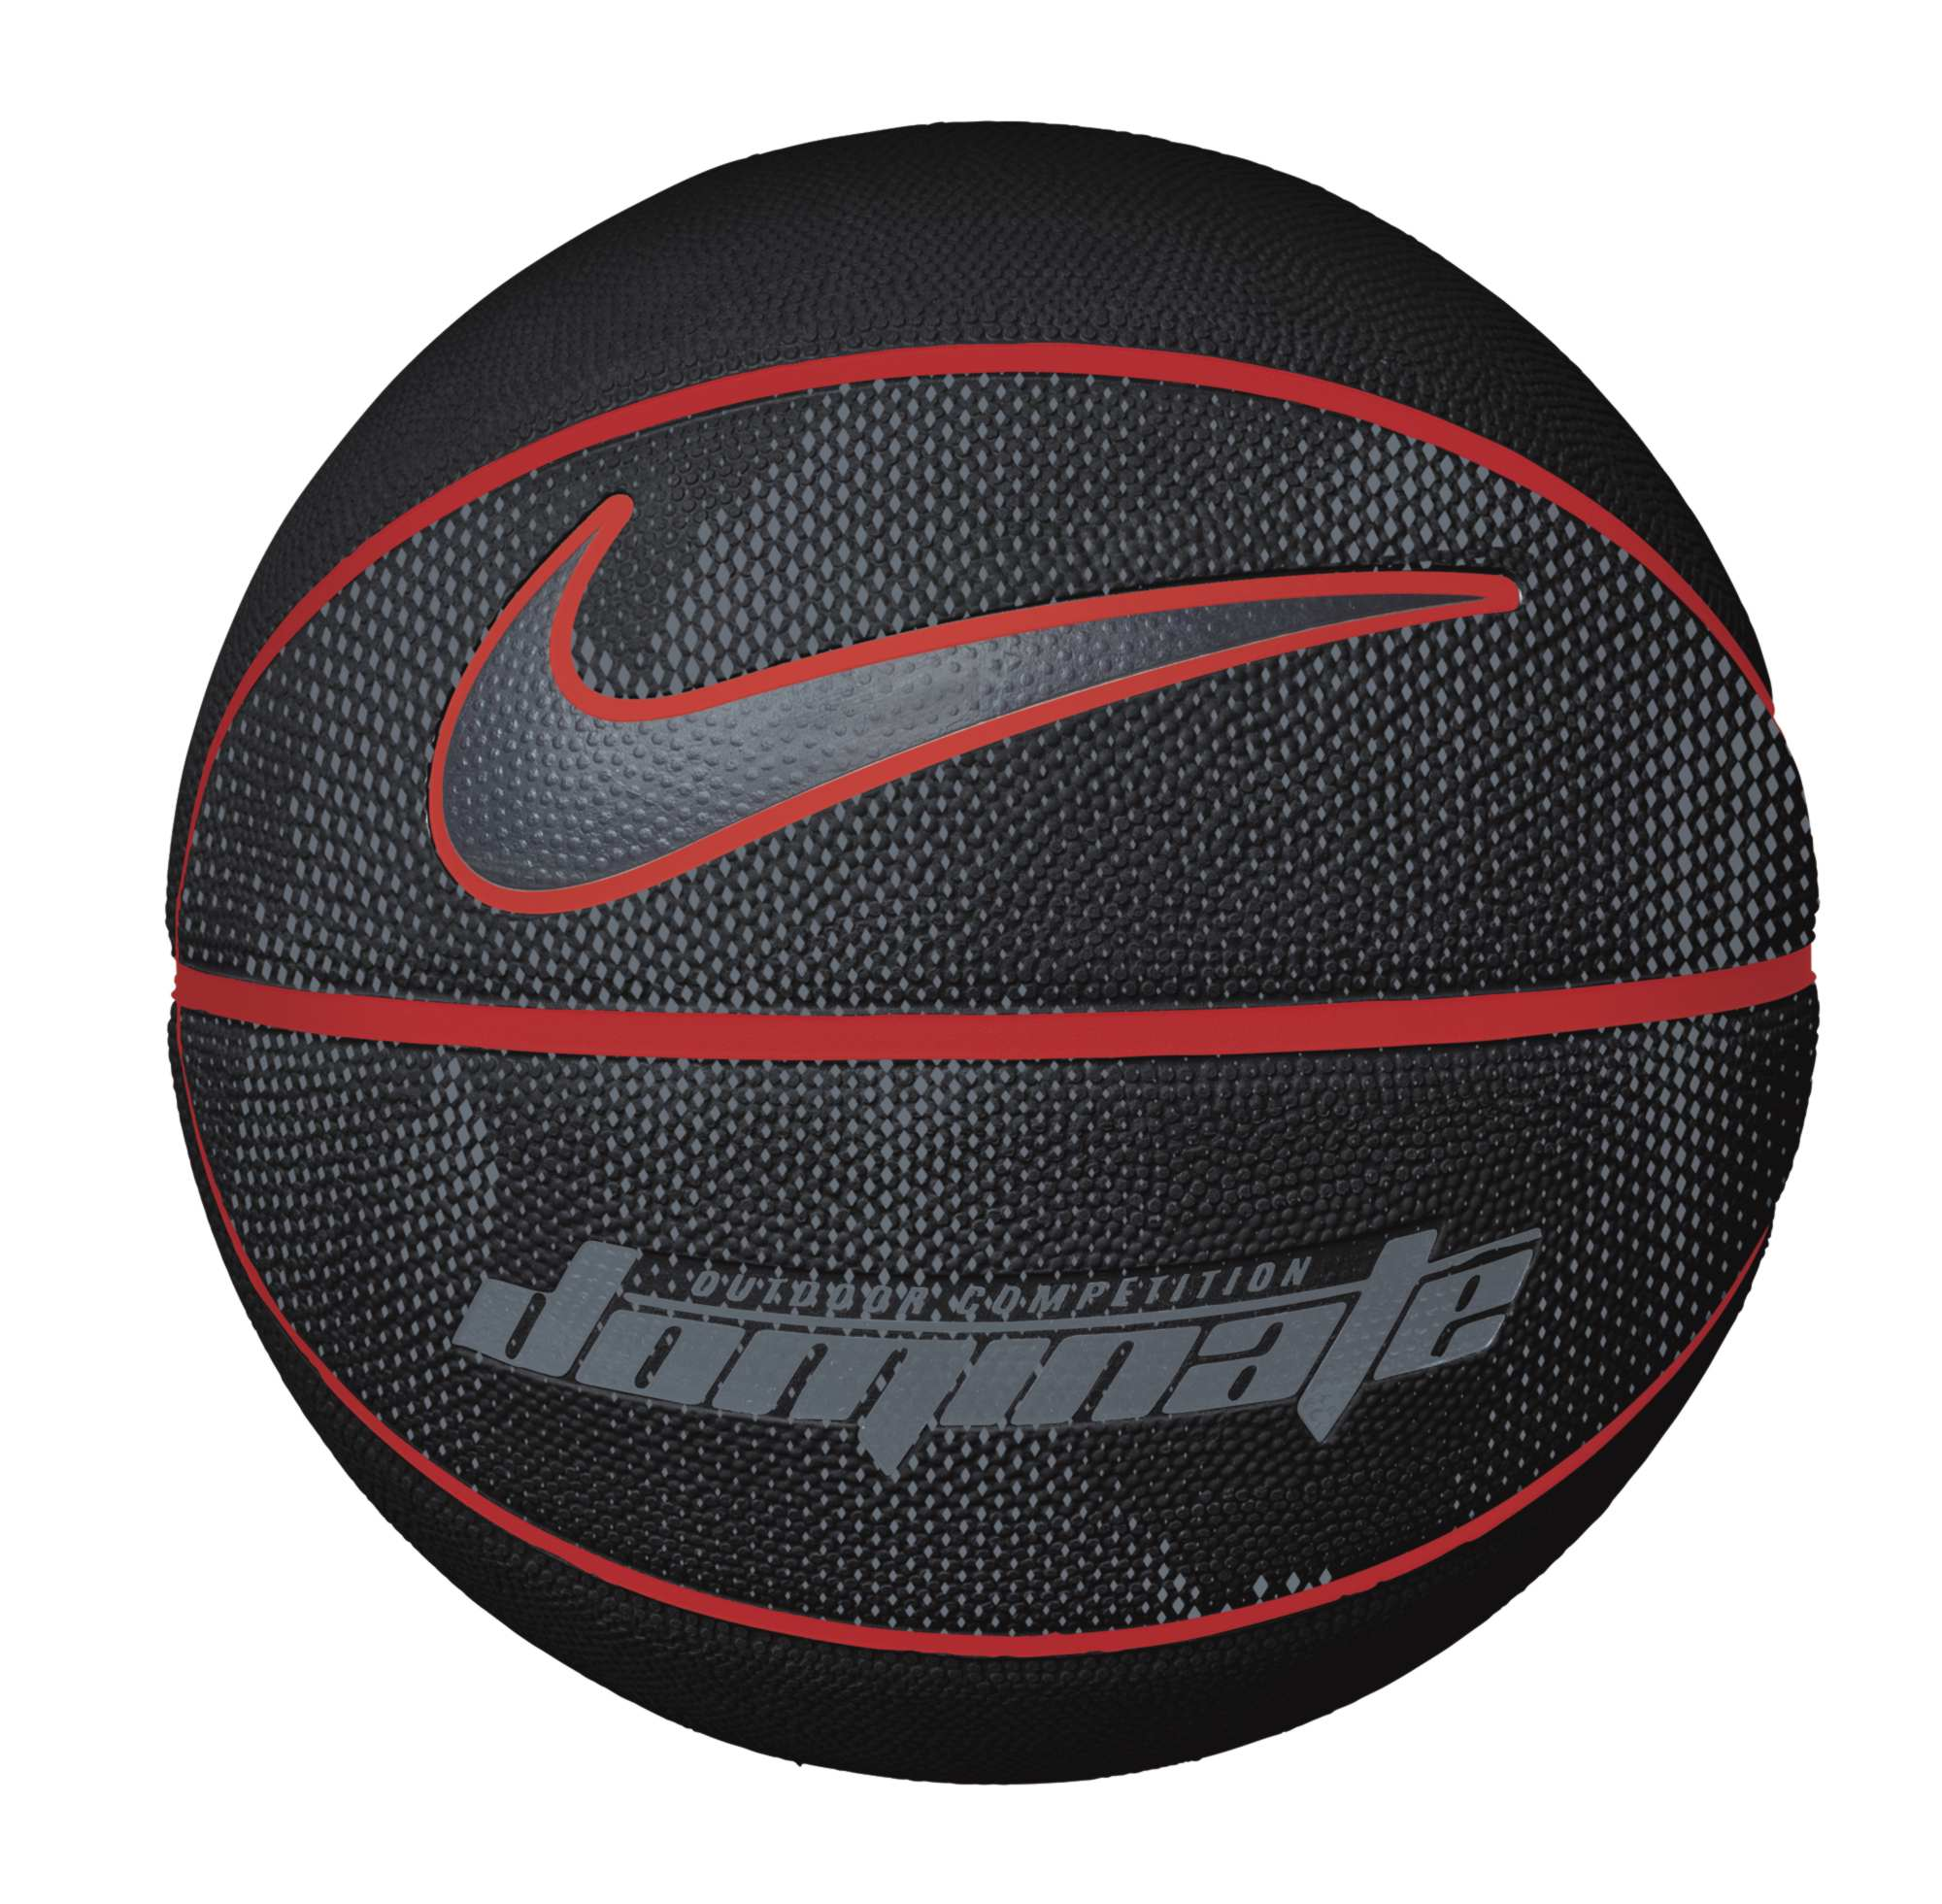 Nike Dominate 8 Panel Basketball - SX-KI.00-019-7